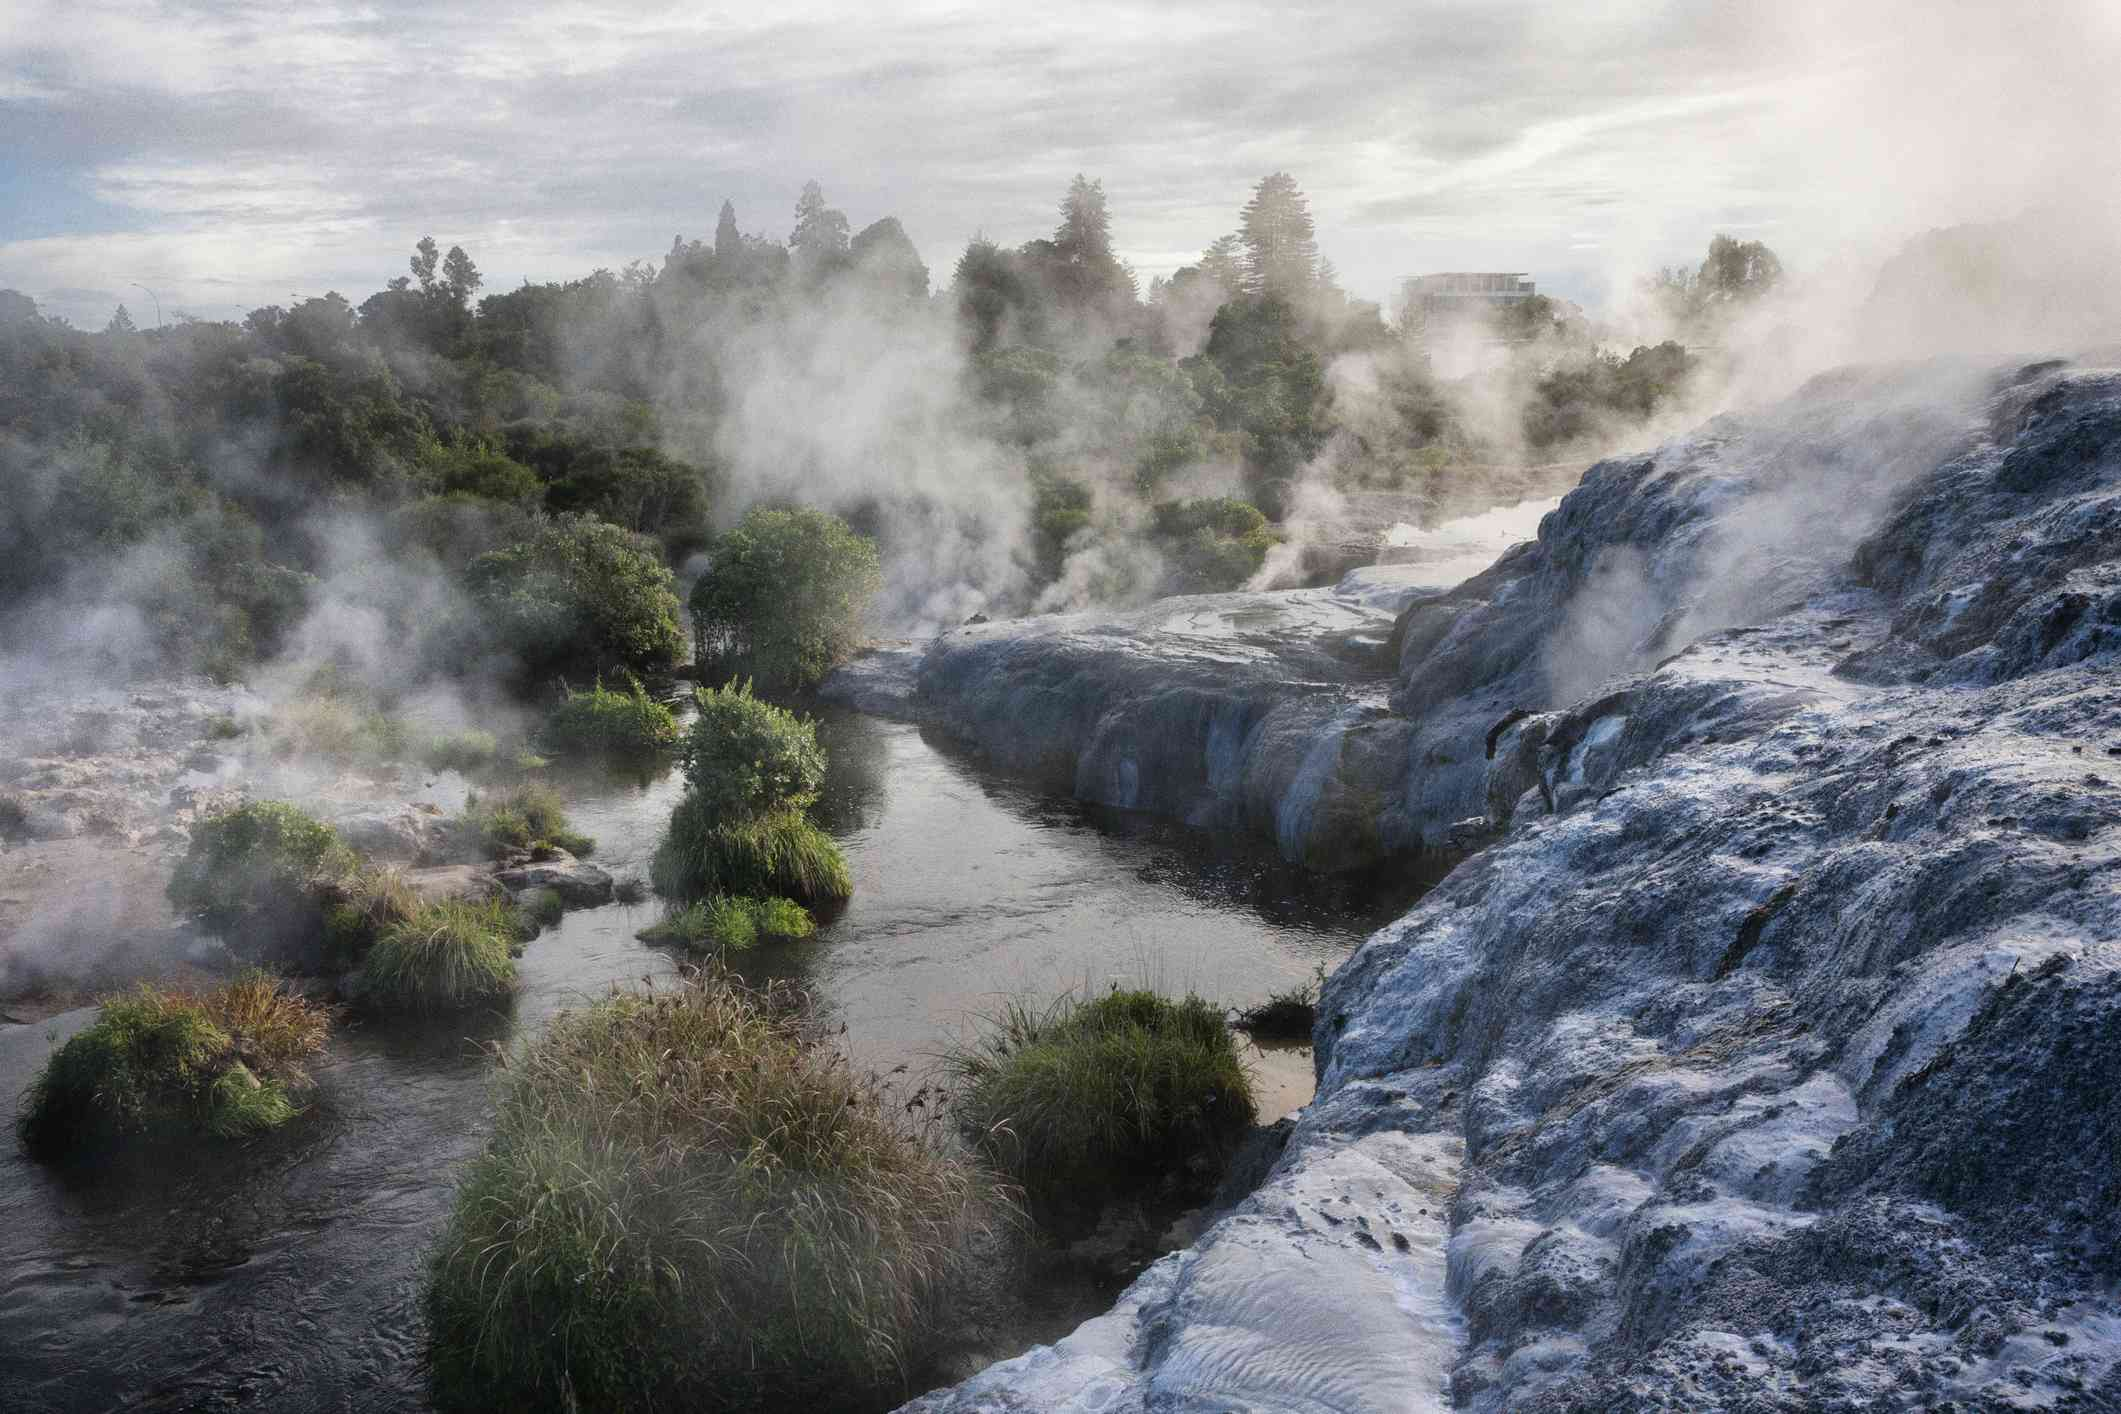 steaming thermal pools with rocks and shrubs